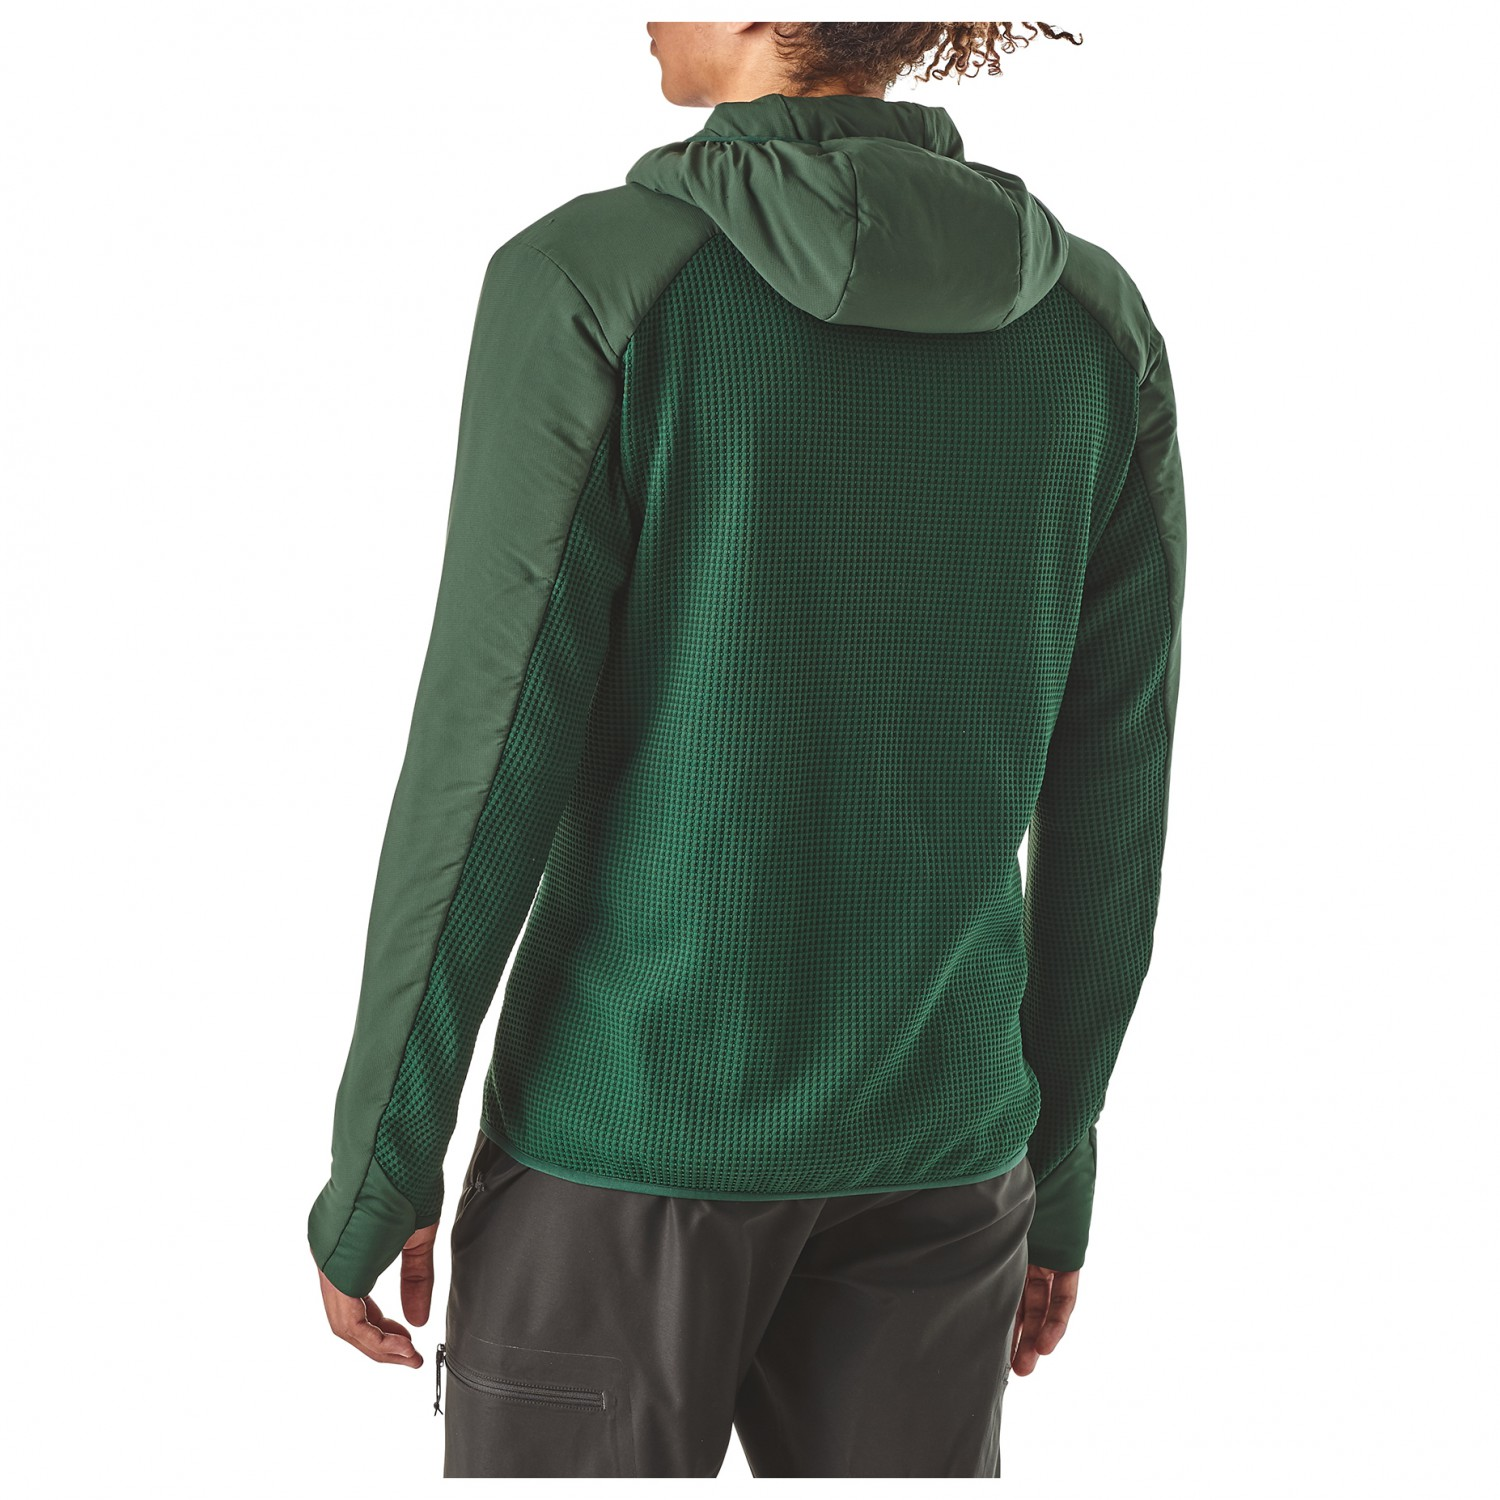 Patagonia Nano Air Light Hybrid Hoody Synthetic Jacket